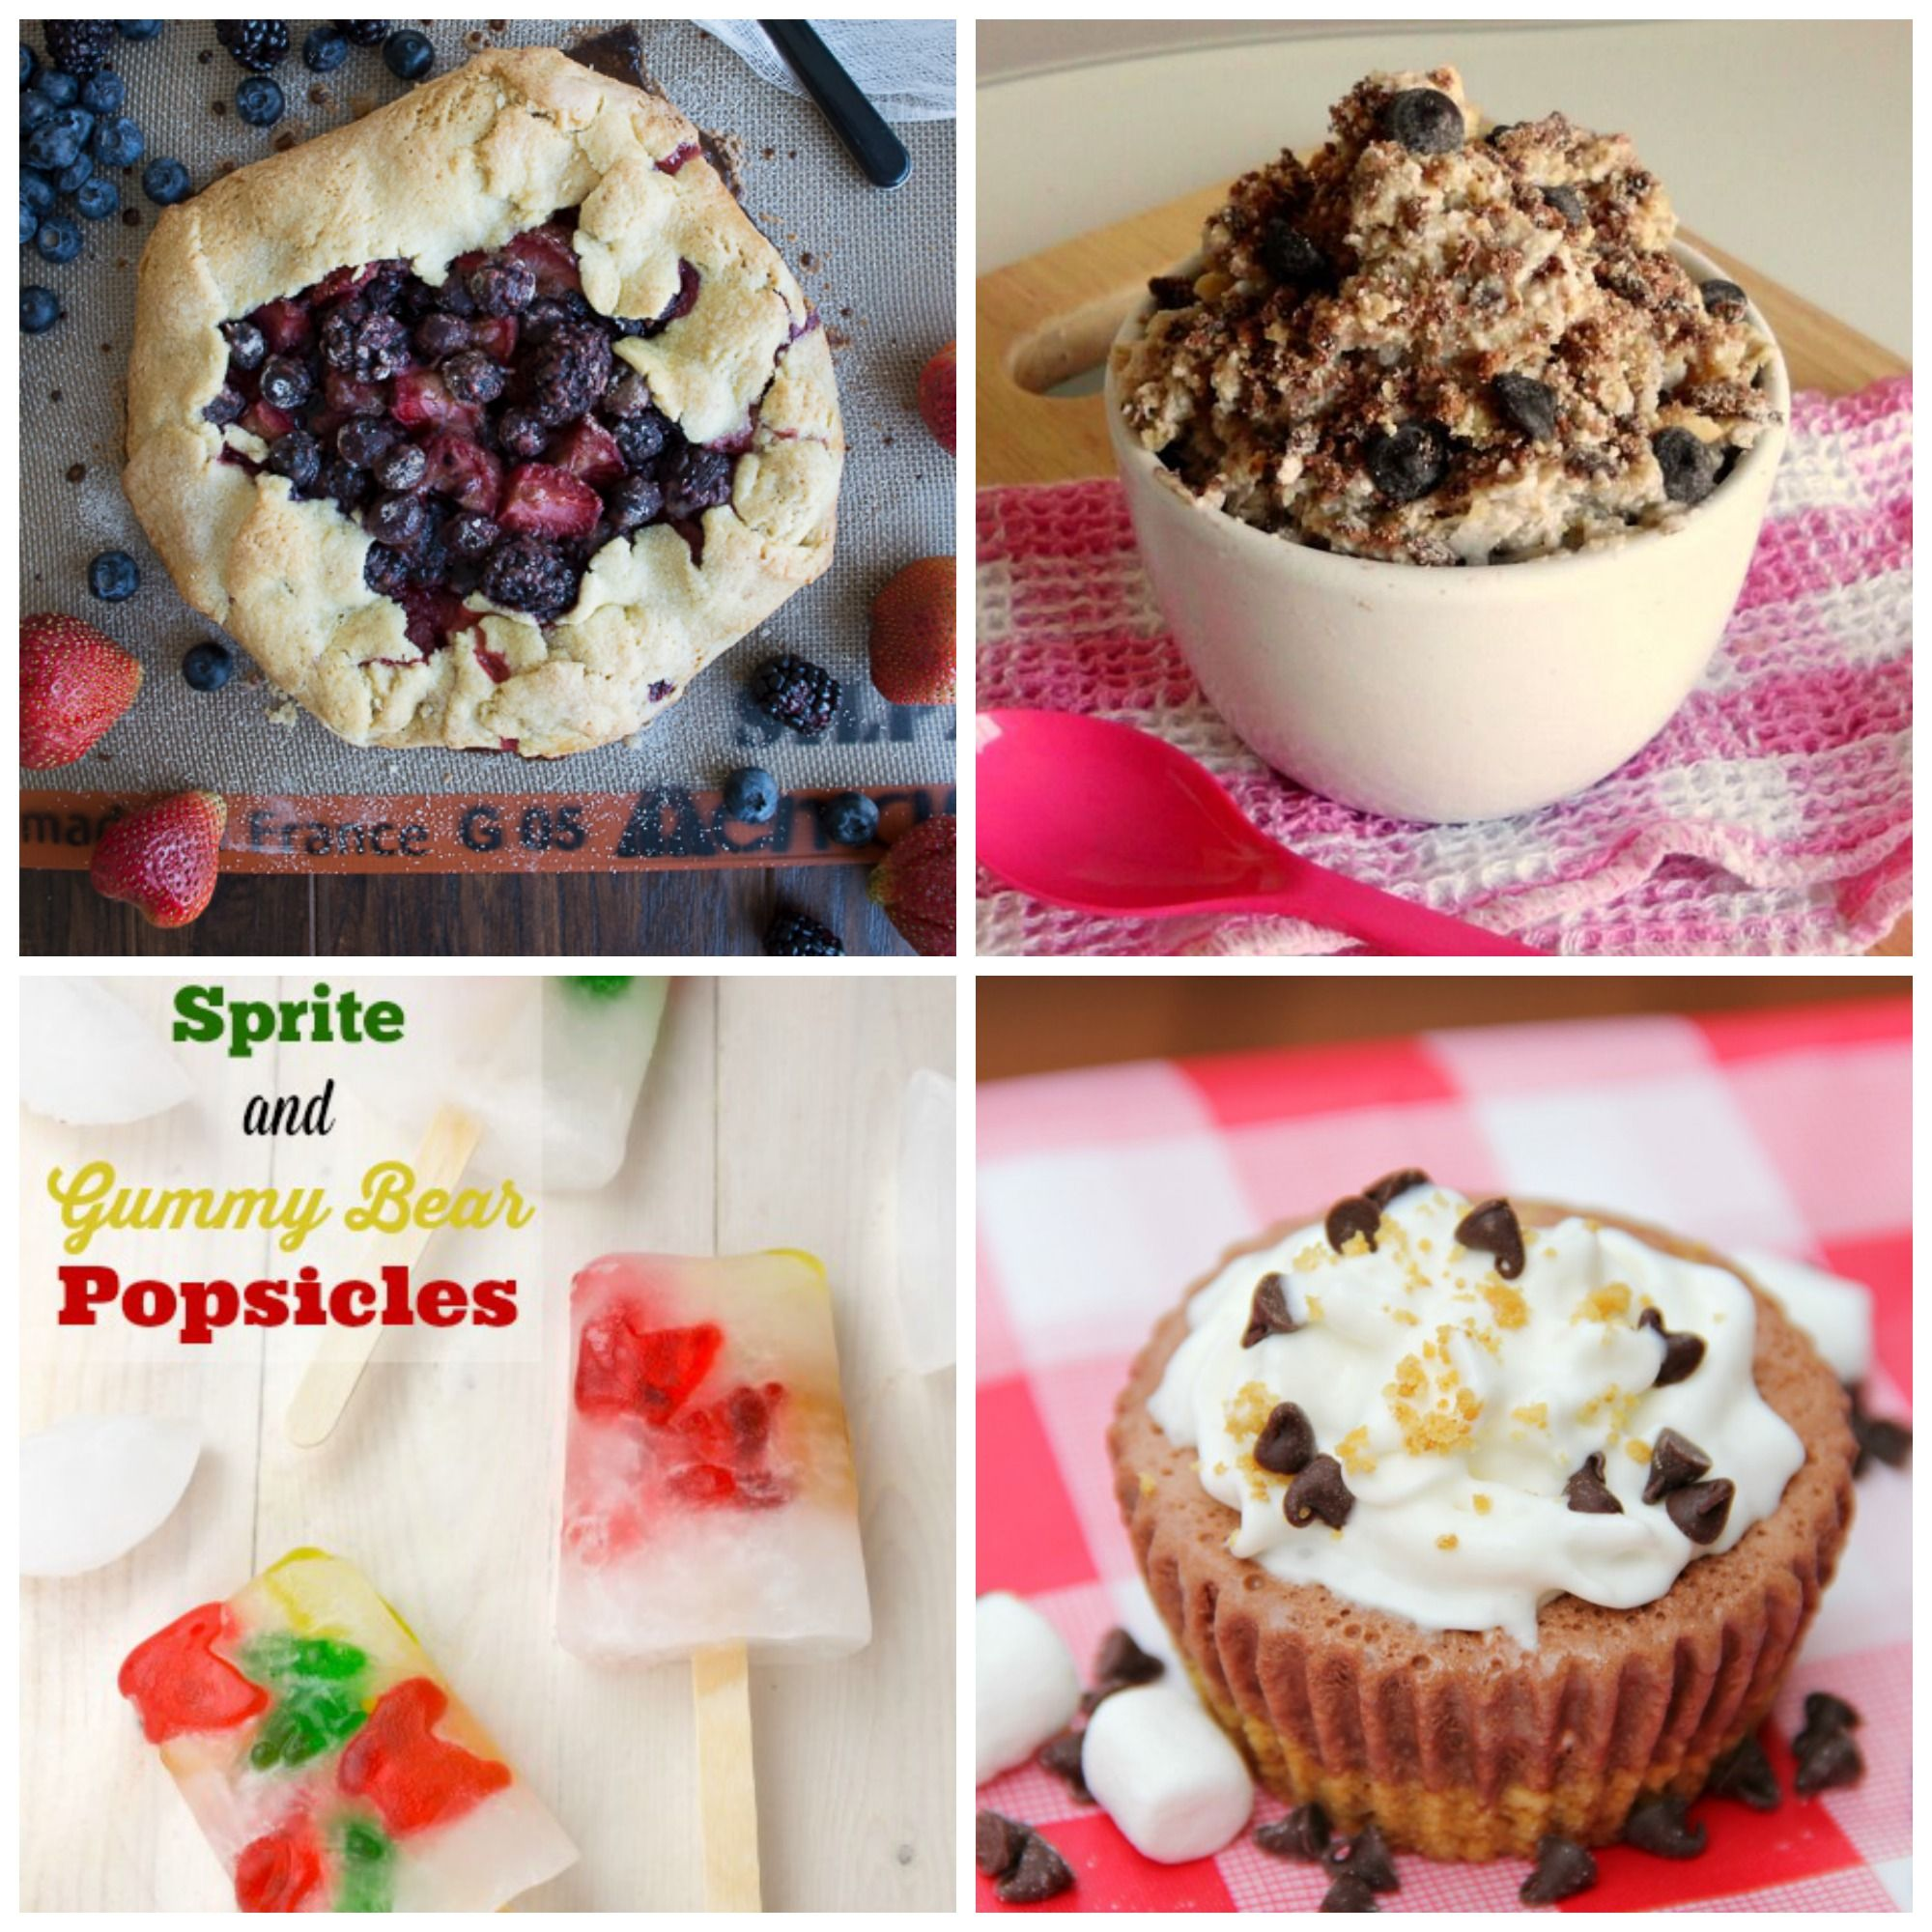 Frozen Smores, Sprite and Gummy Bears Popsicles, Cookie Dough Frozen Yogurt and Triple Berry Rustic Pie recipes.